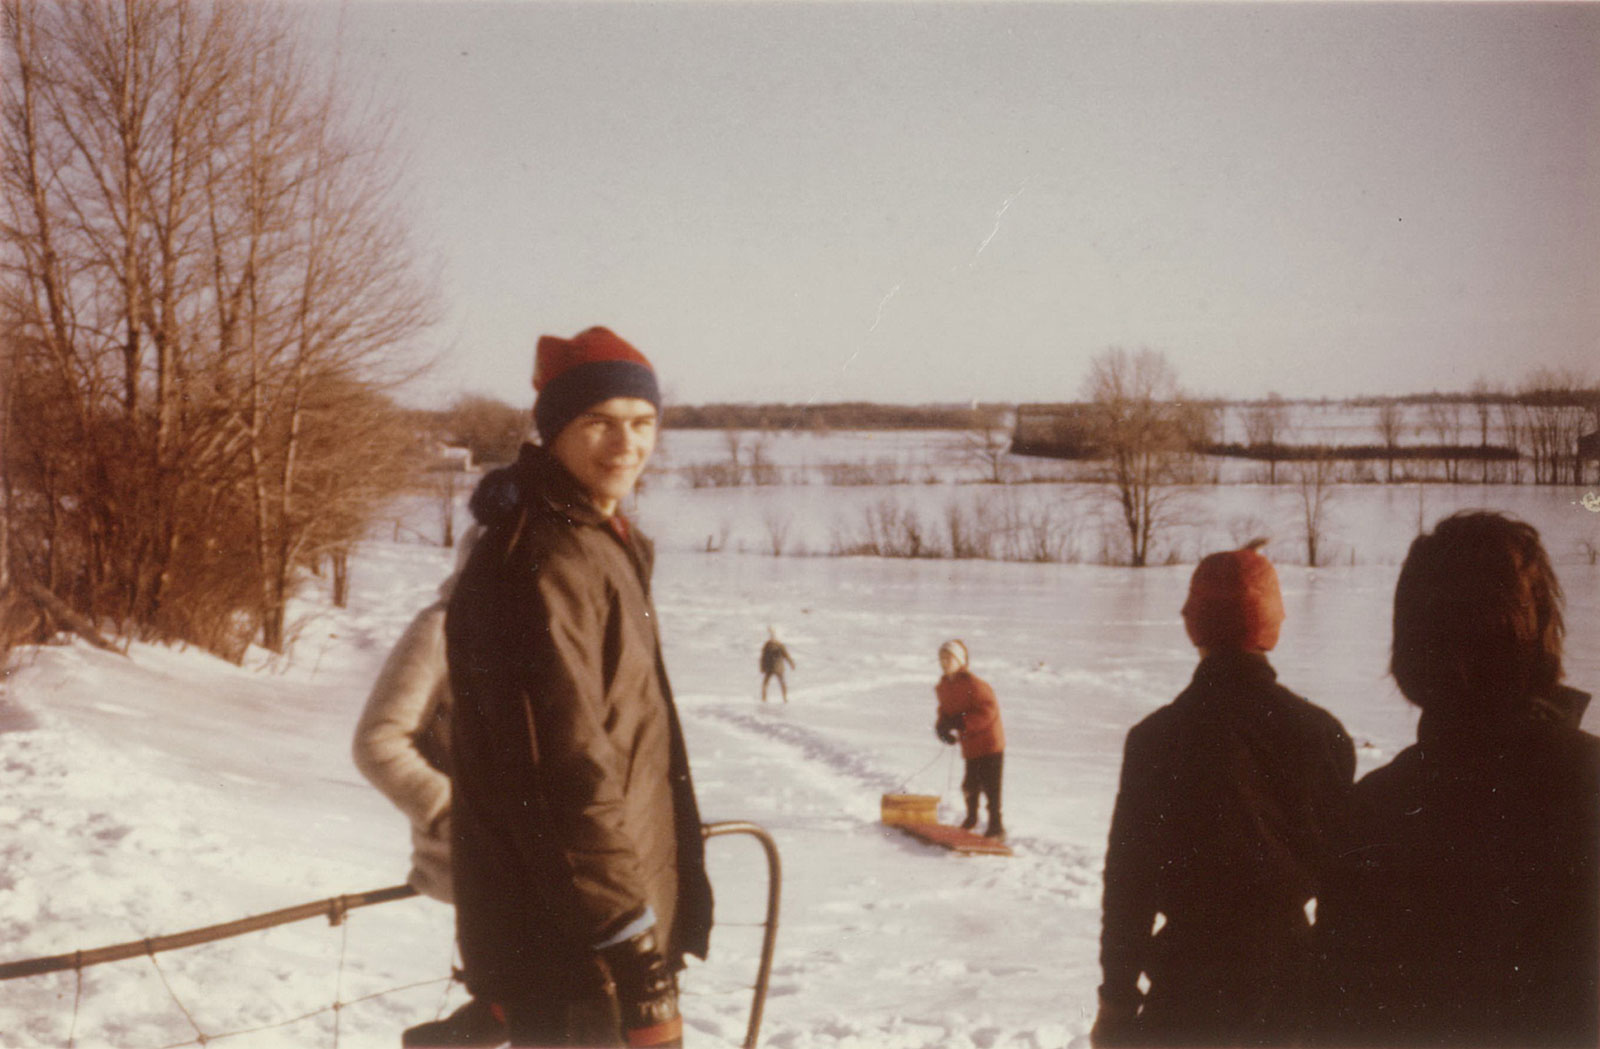 Hazeldean was (and still is) a hilly place and toboganning was a favourite winter activity. Photo from the collection of Roger Young.